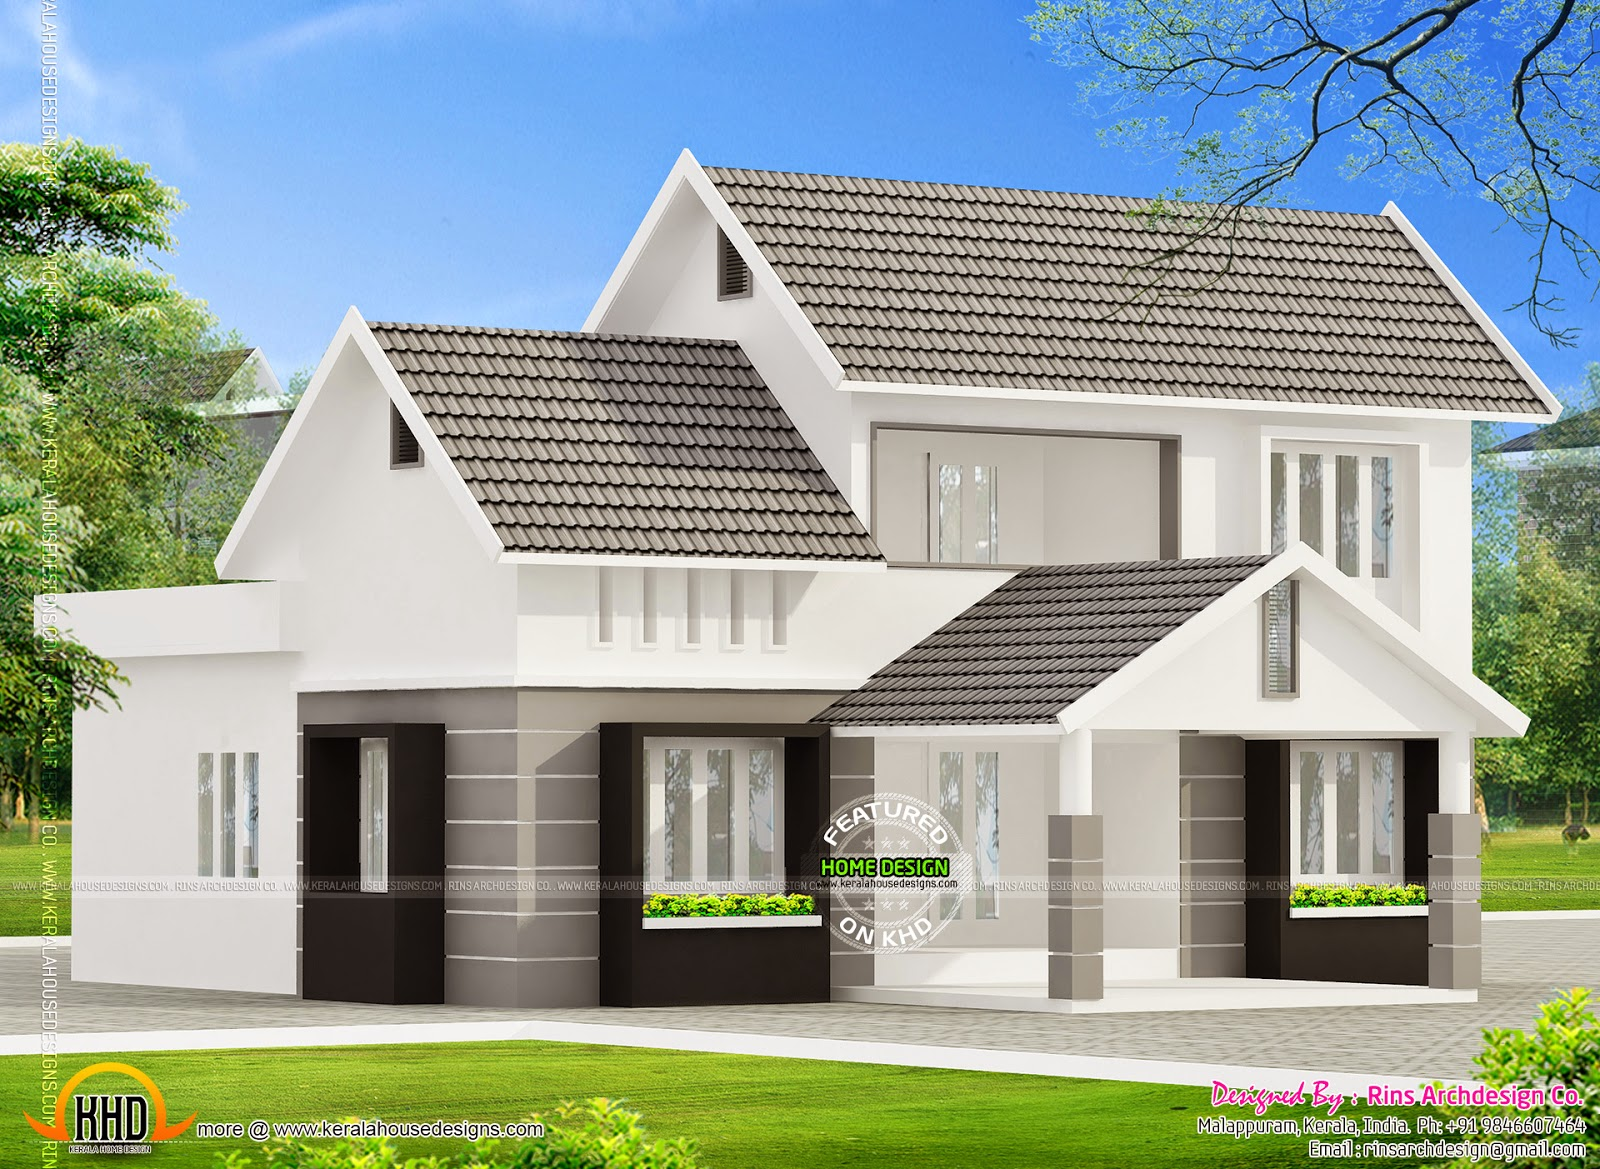 Kerala house plans 1800 square feet for One story 1800 sq ft house plans